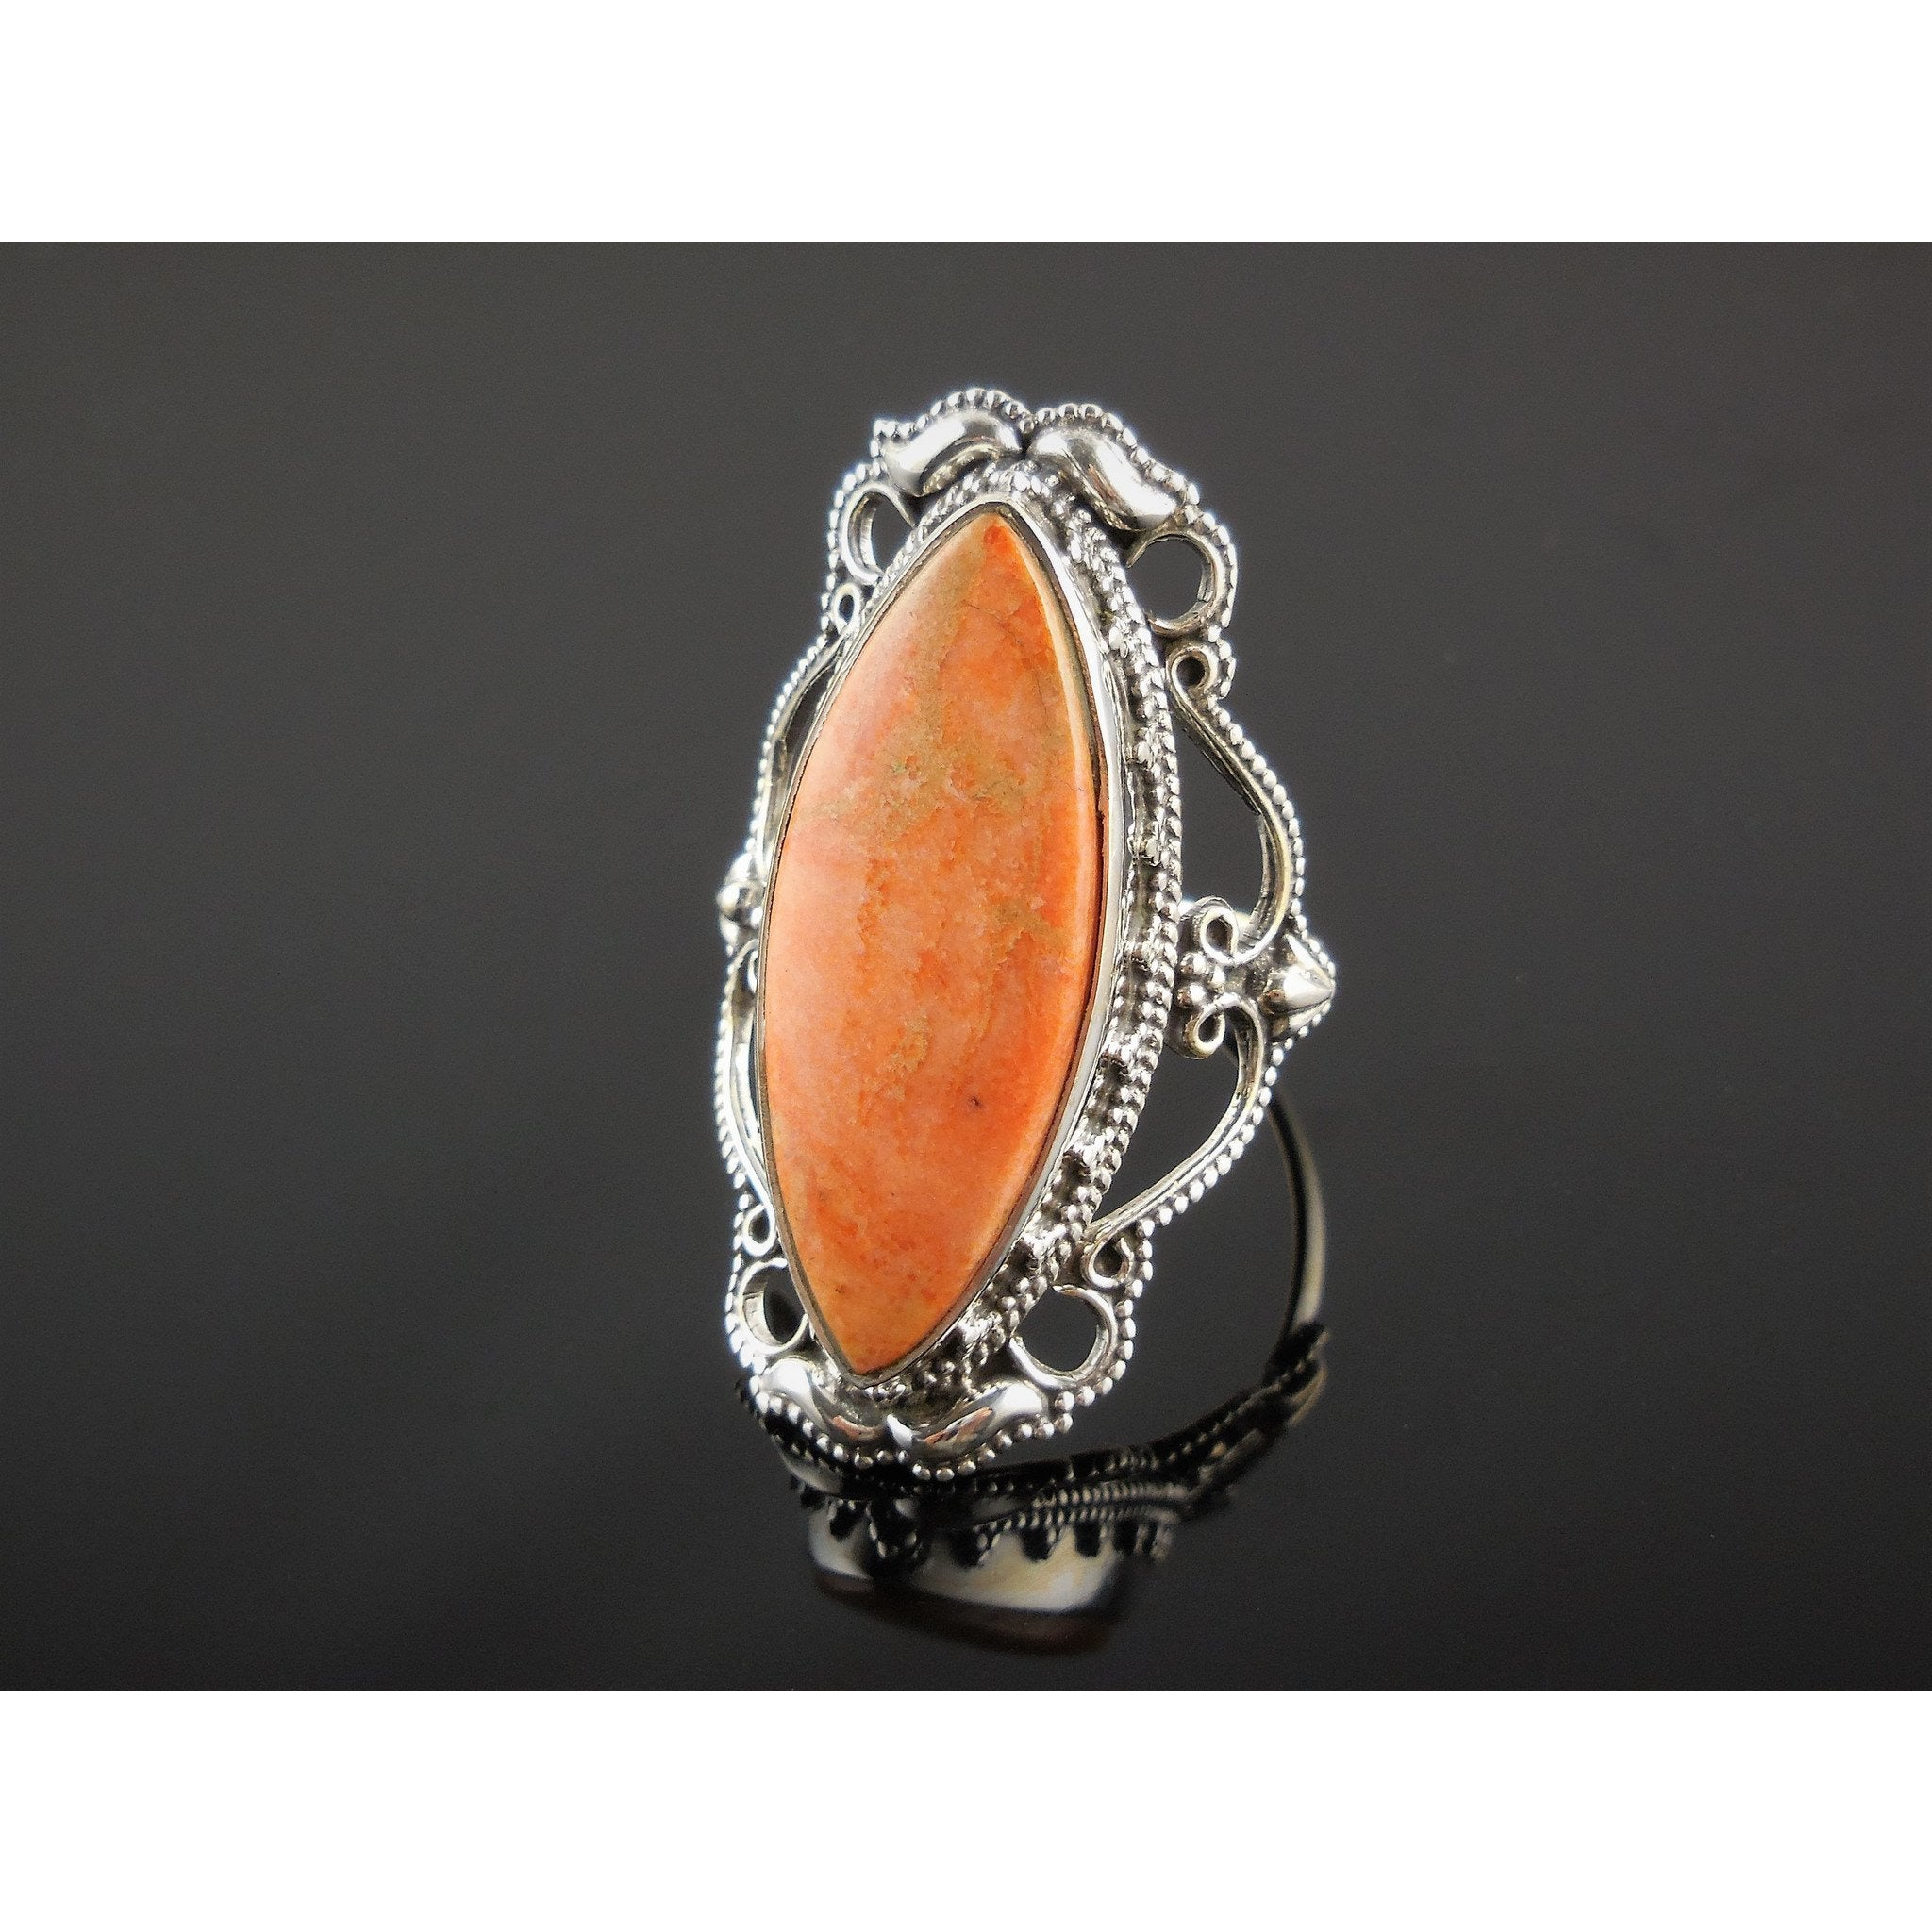 Italian Coral Sterling Silver Ring – Size 9.0